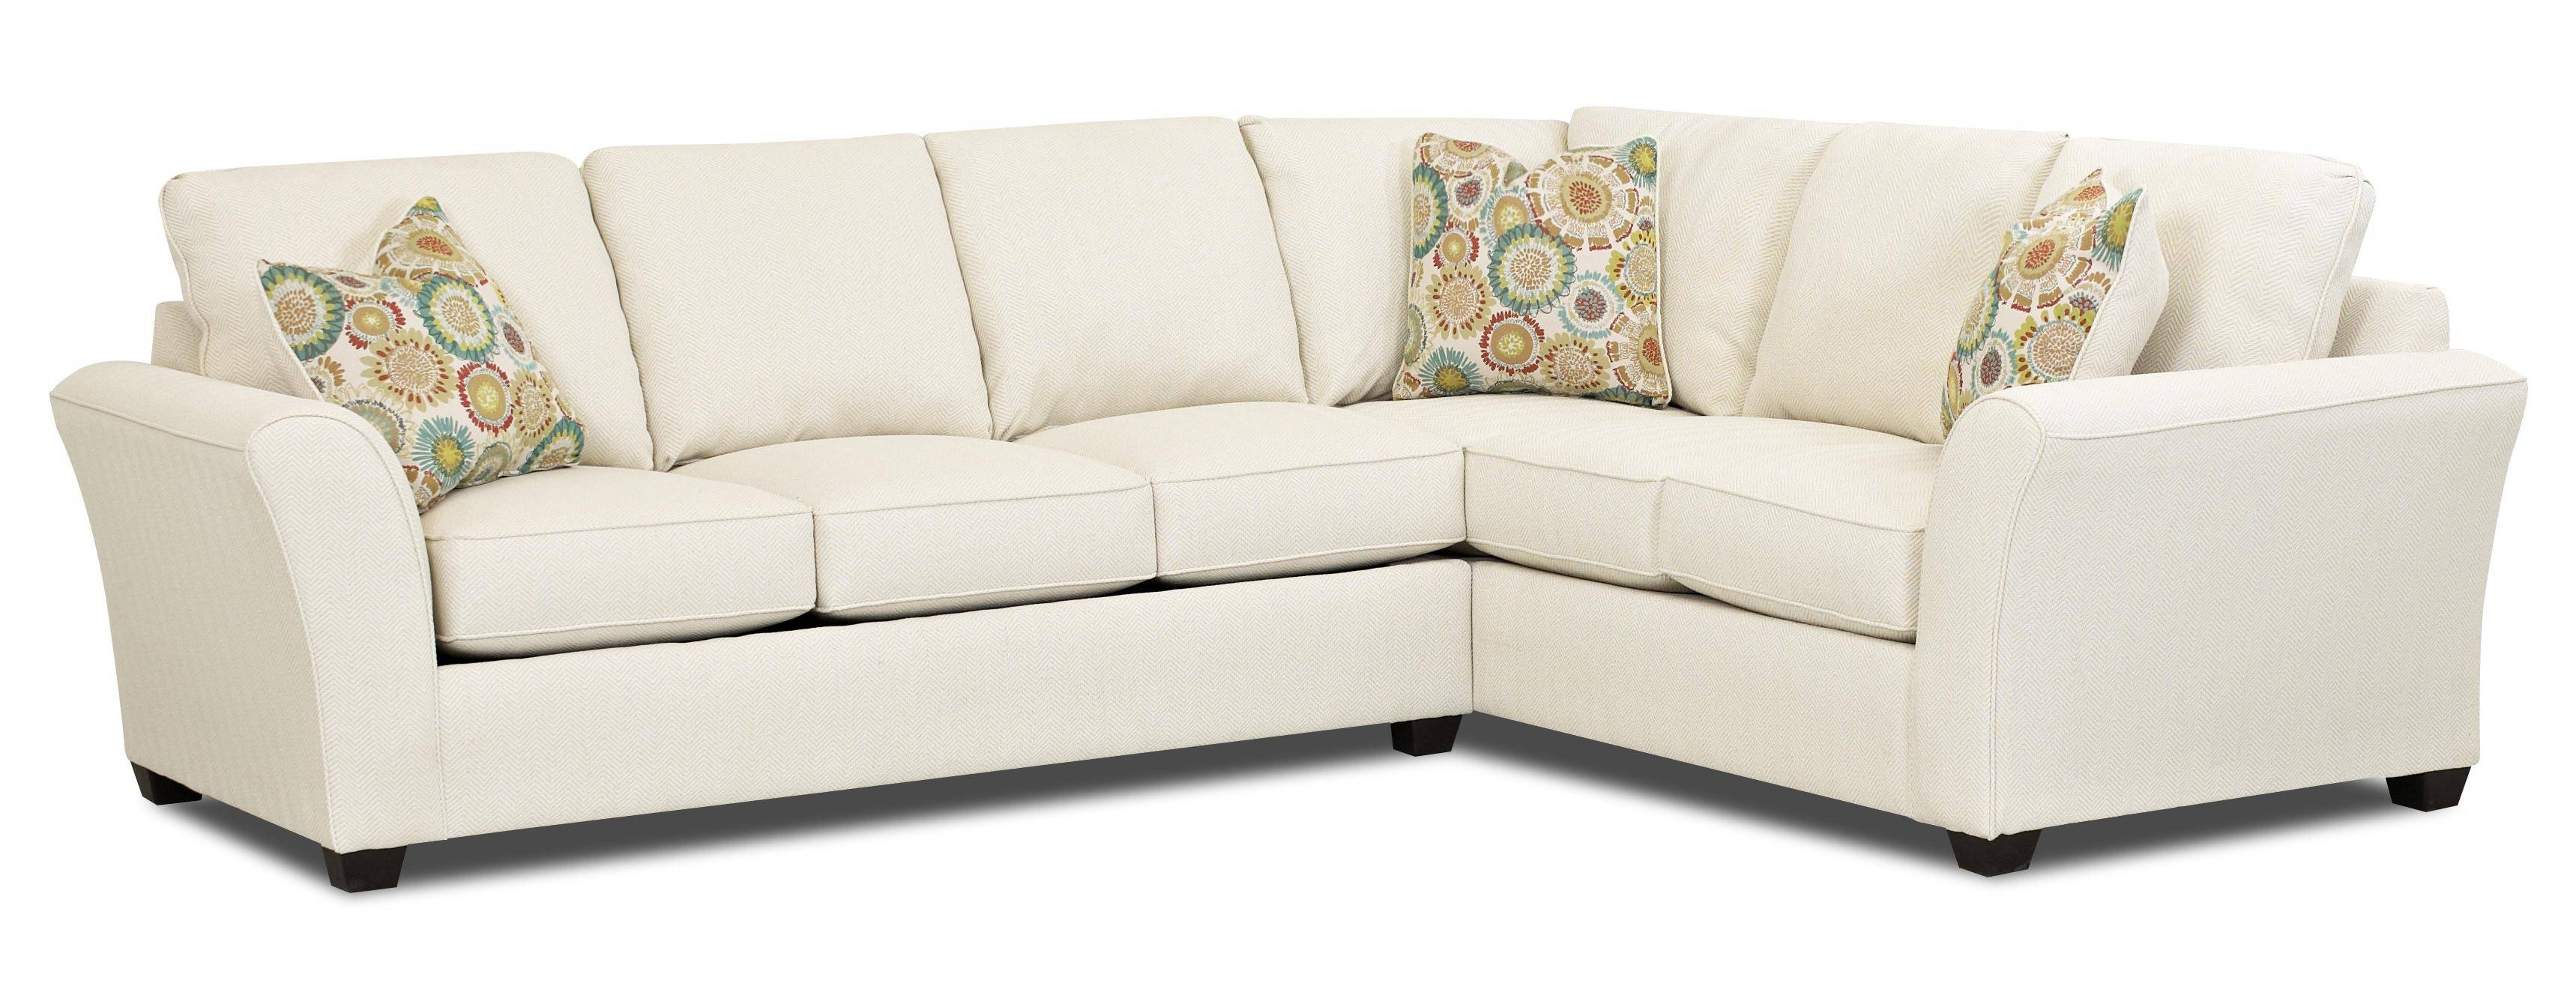 Transitional Sectional Sleeper Sofa With Dreamquest Mattress in Short Sectional Sofas (Image 15 of 15)